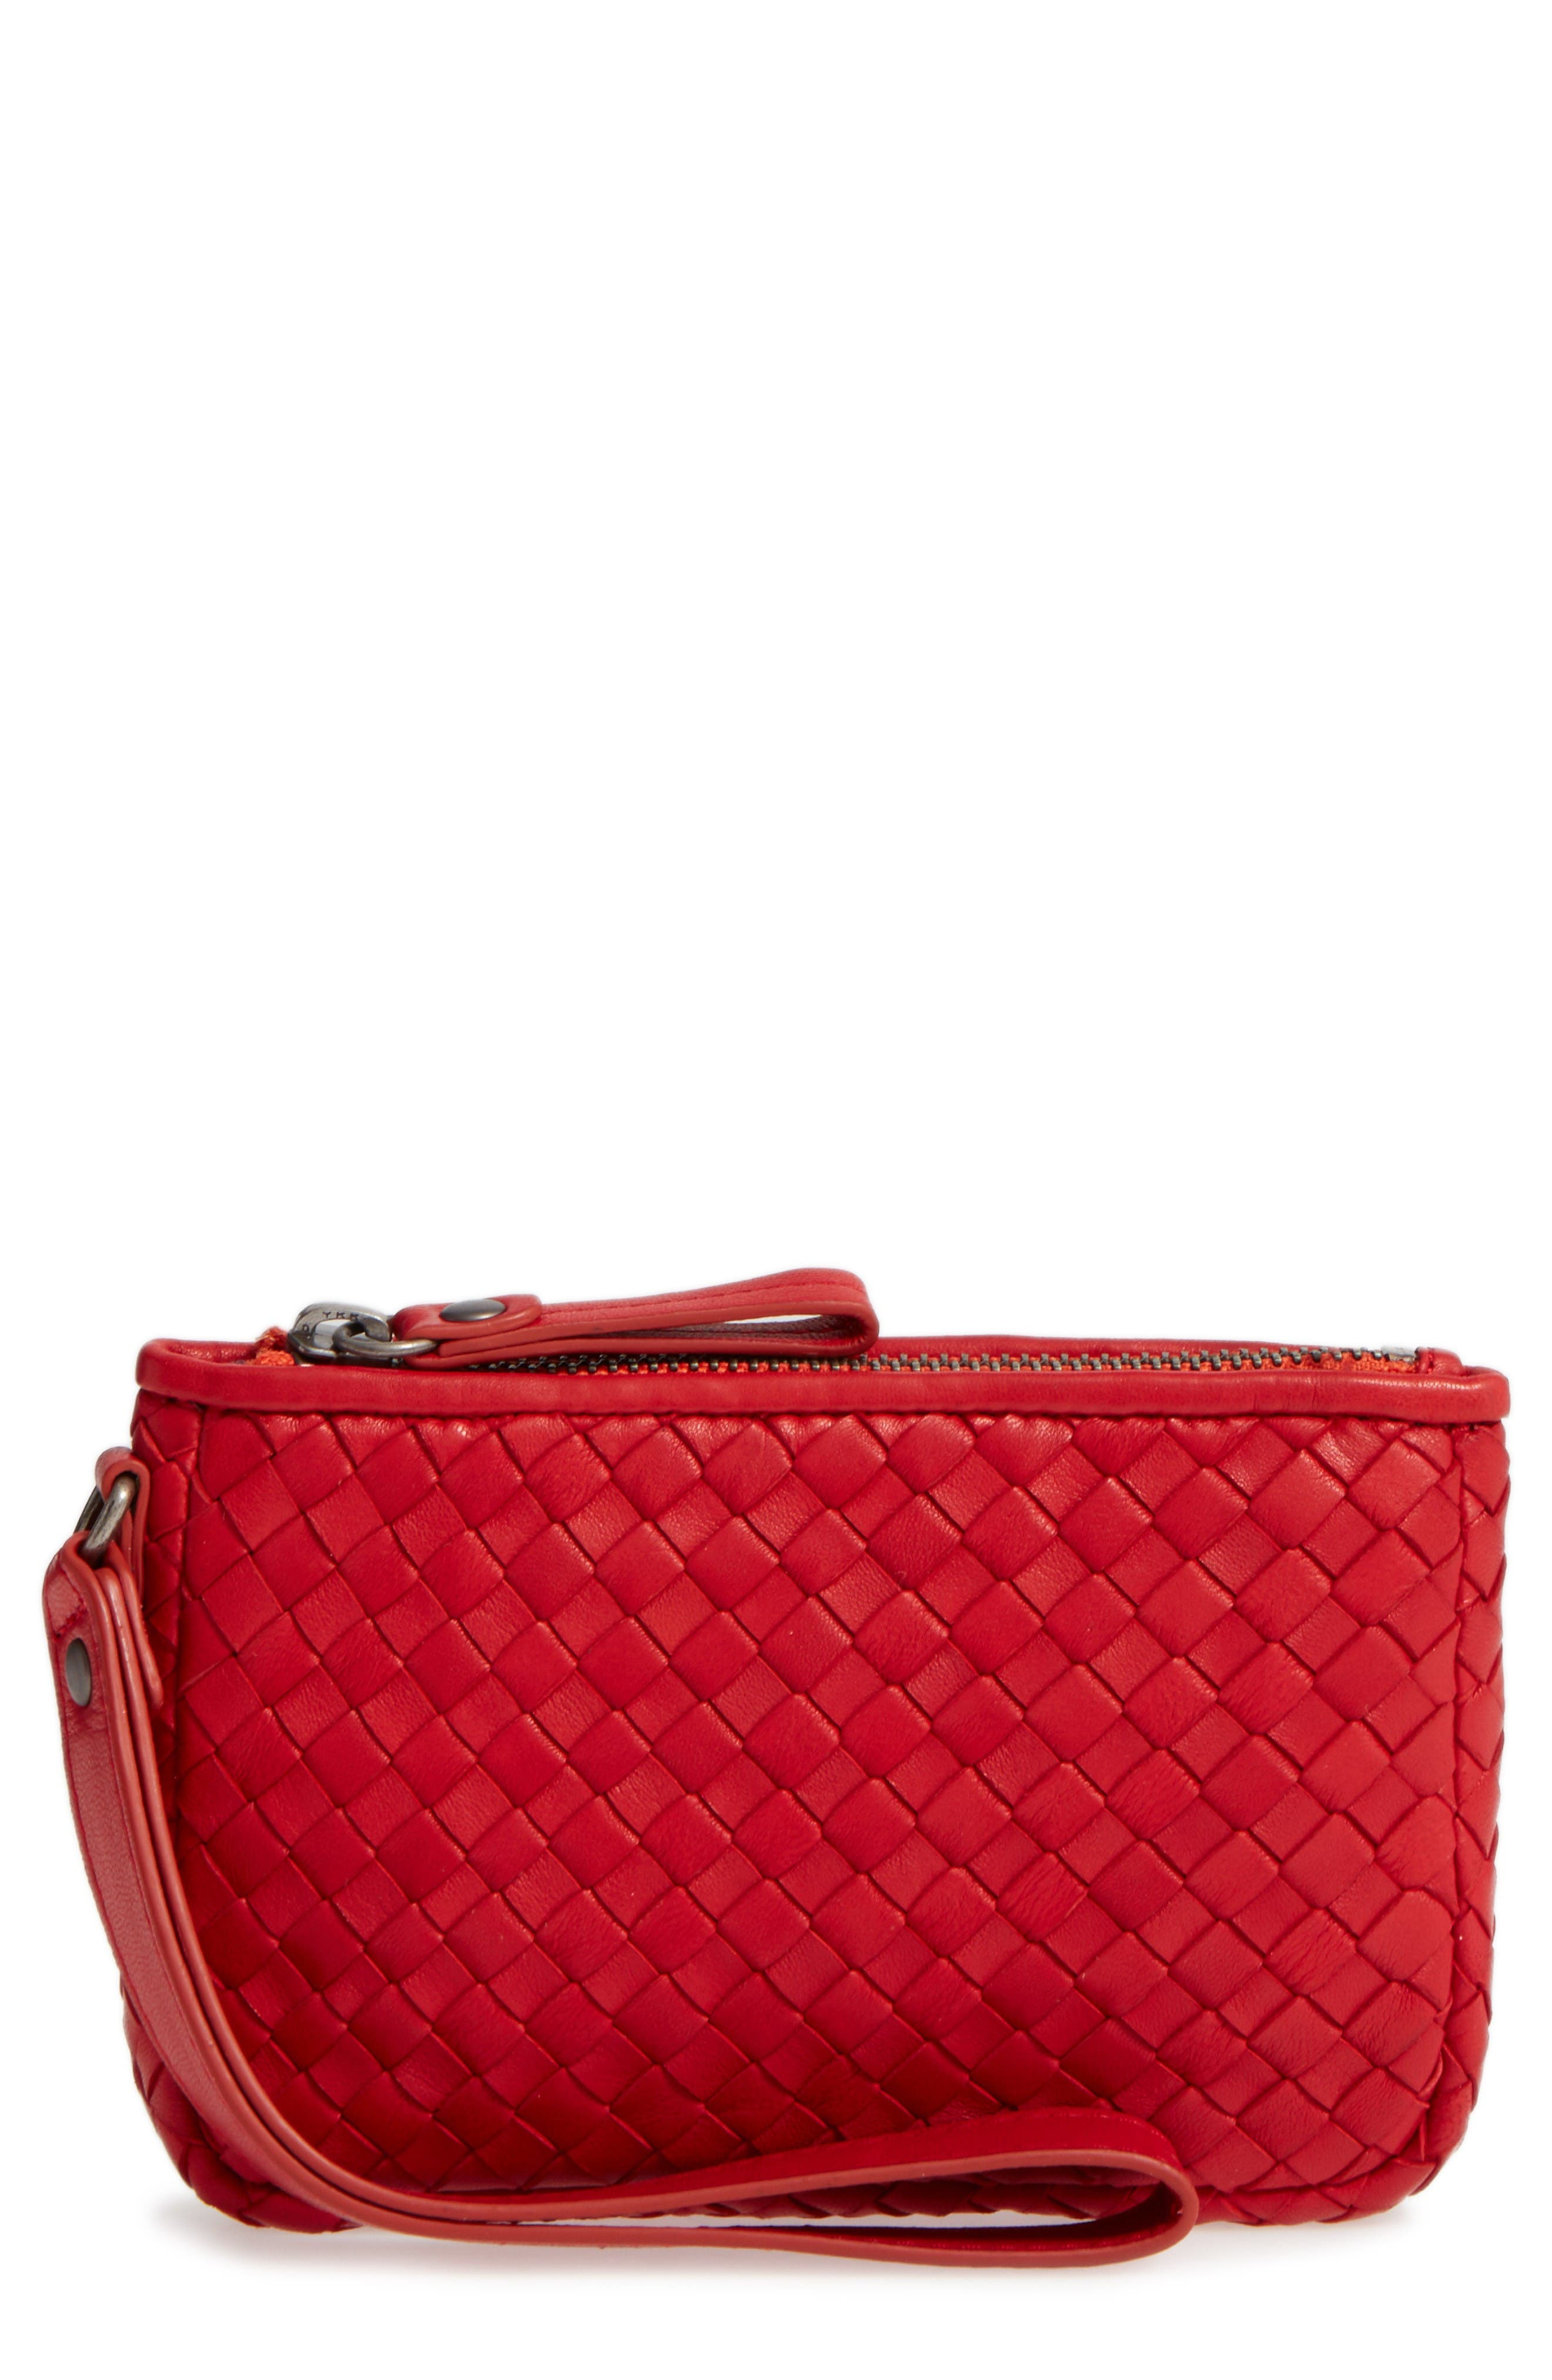 Robert Zur Small Maya Leather Clutch